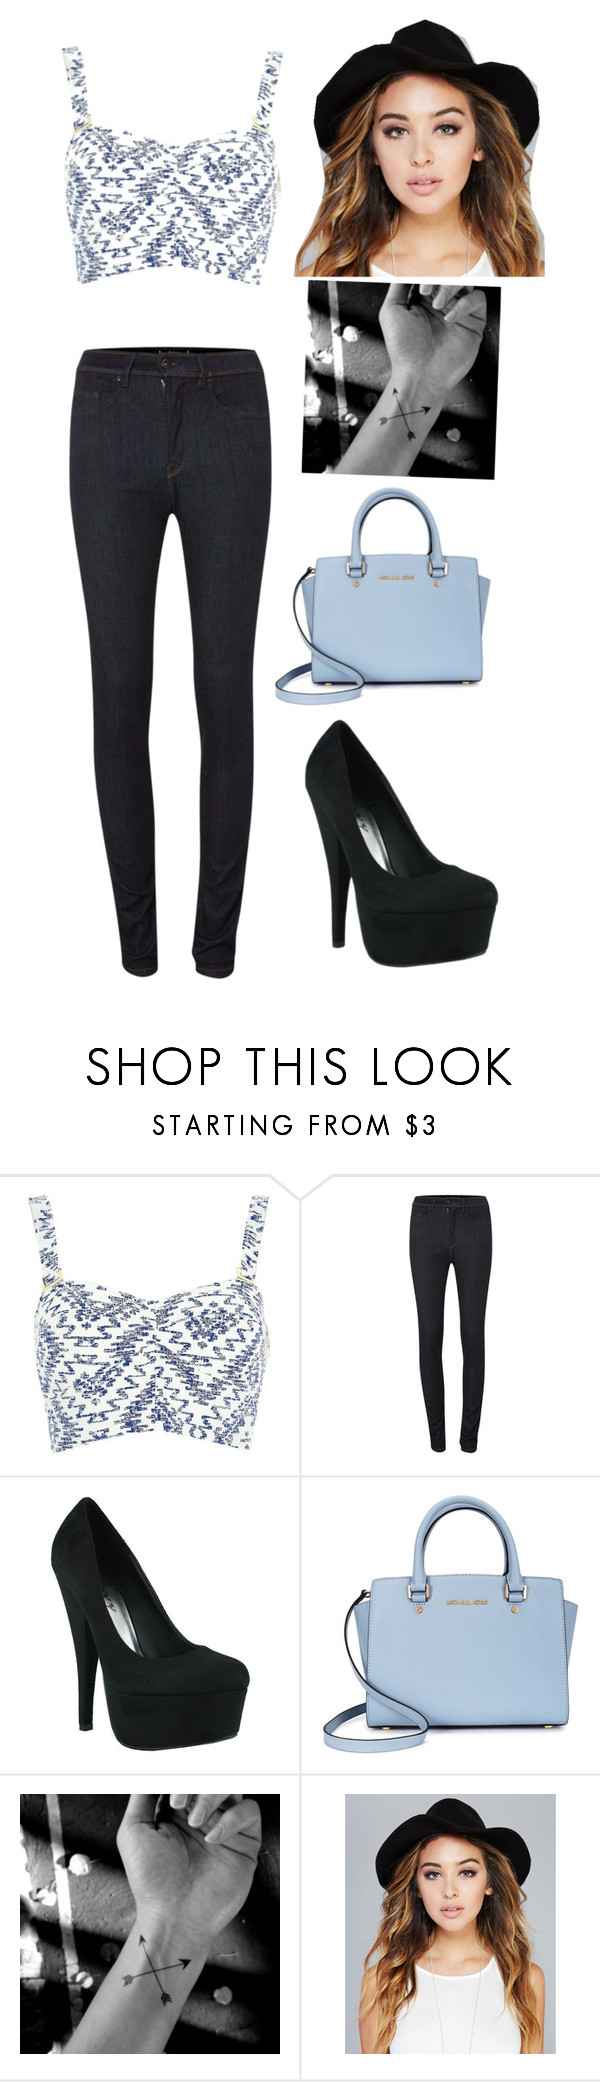 """Untitled #15"" by mirandadancer54 ❤ liked on Polyvore featuring River Island, Salsa, Michael Kors and Wet Seal"